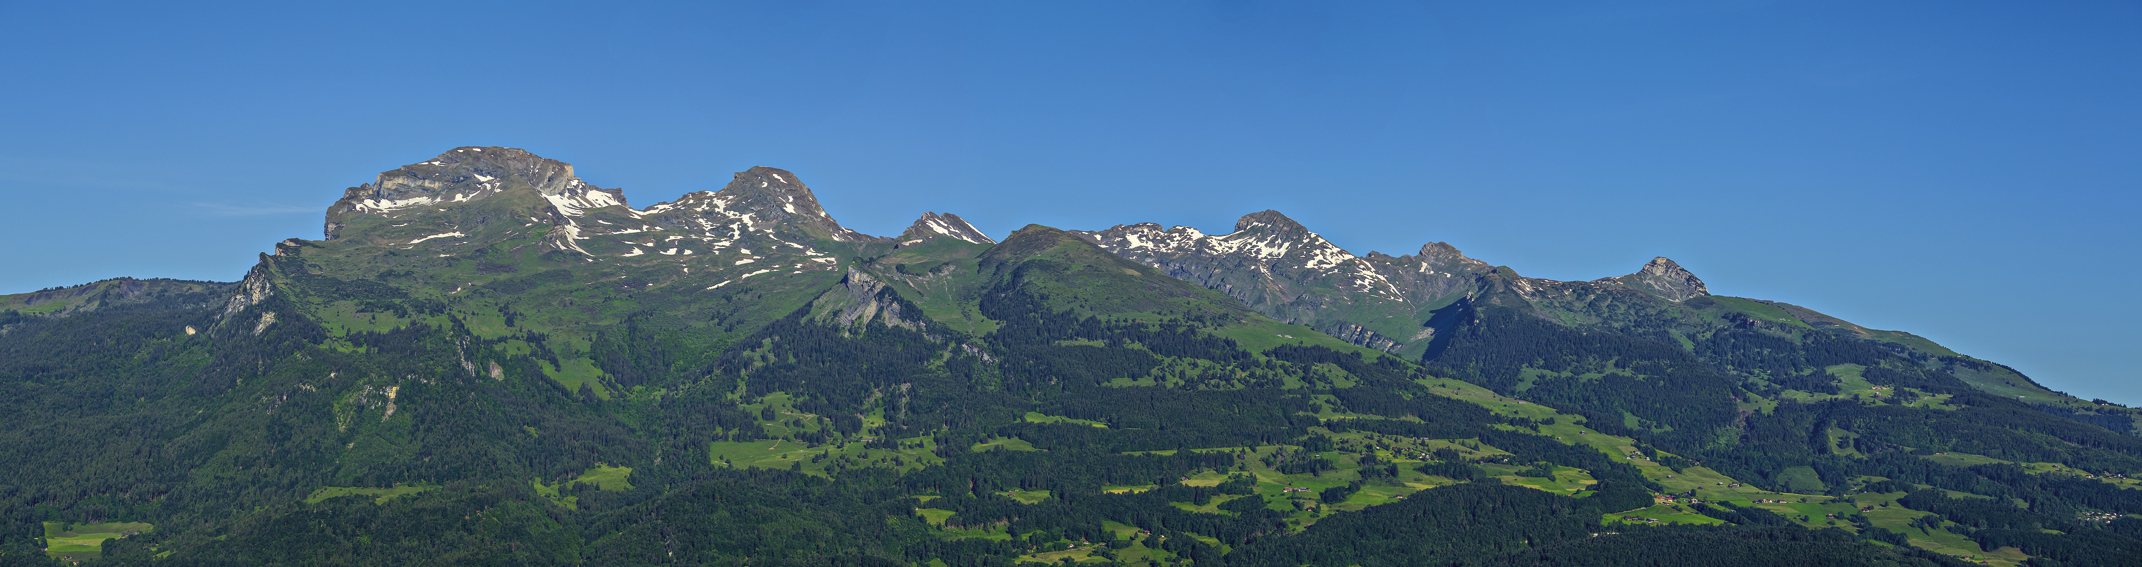 Swiss-Mountains seen from above Triesen, Rheintal, Rhine-valley, Liechtenstein.